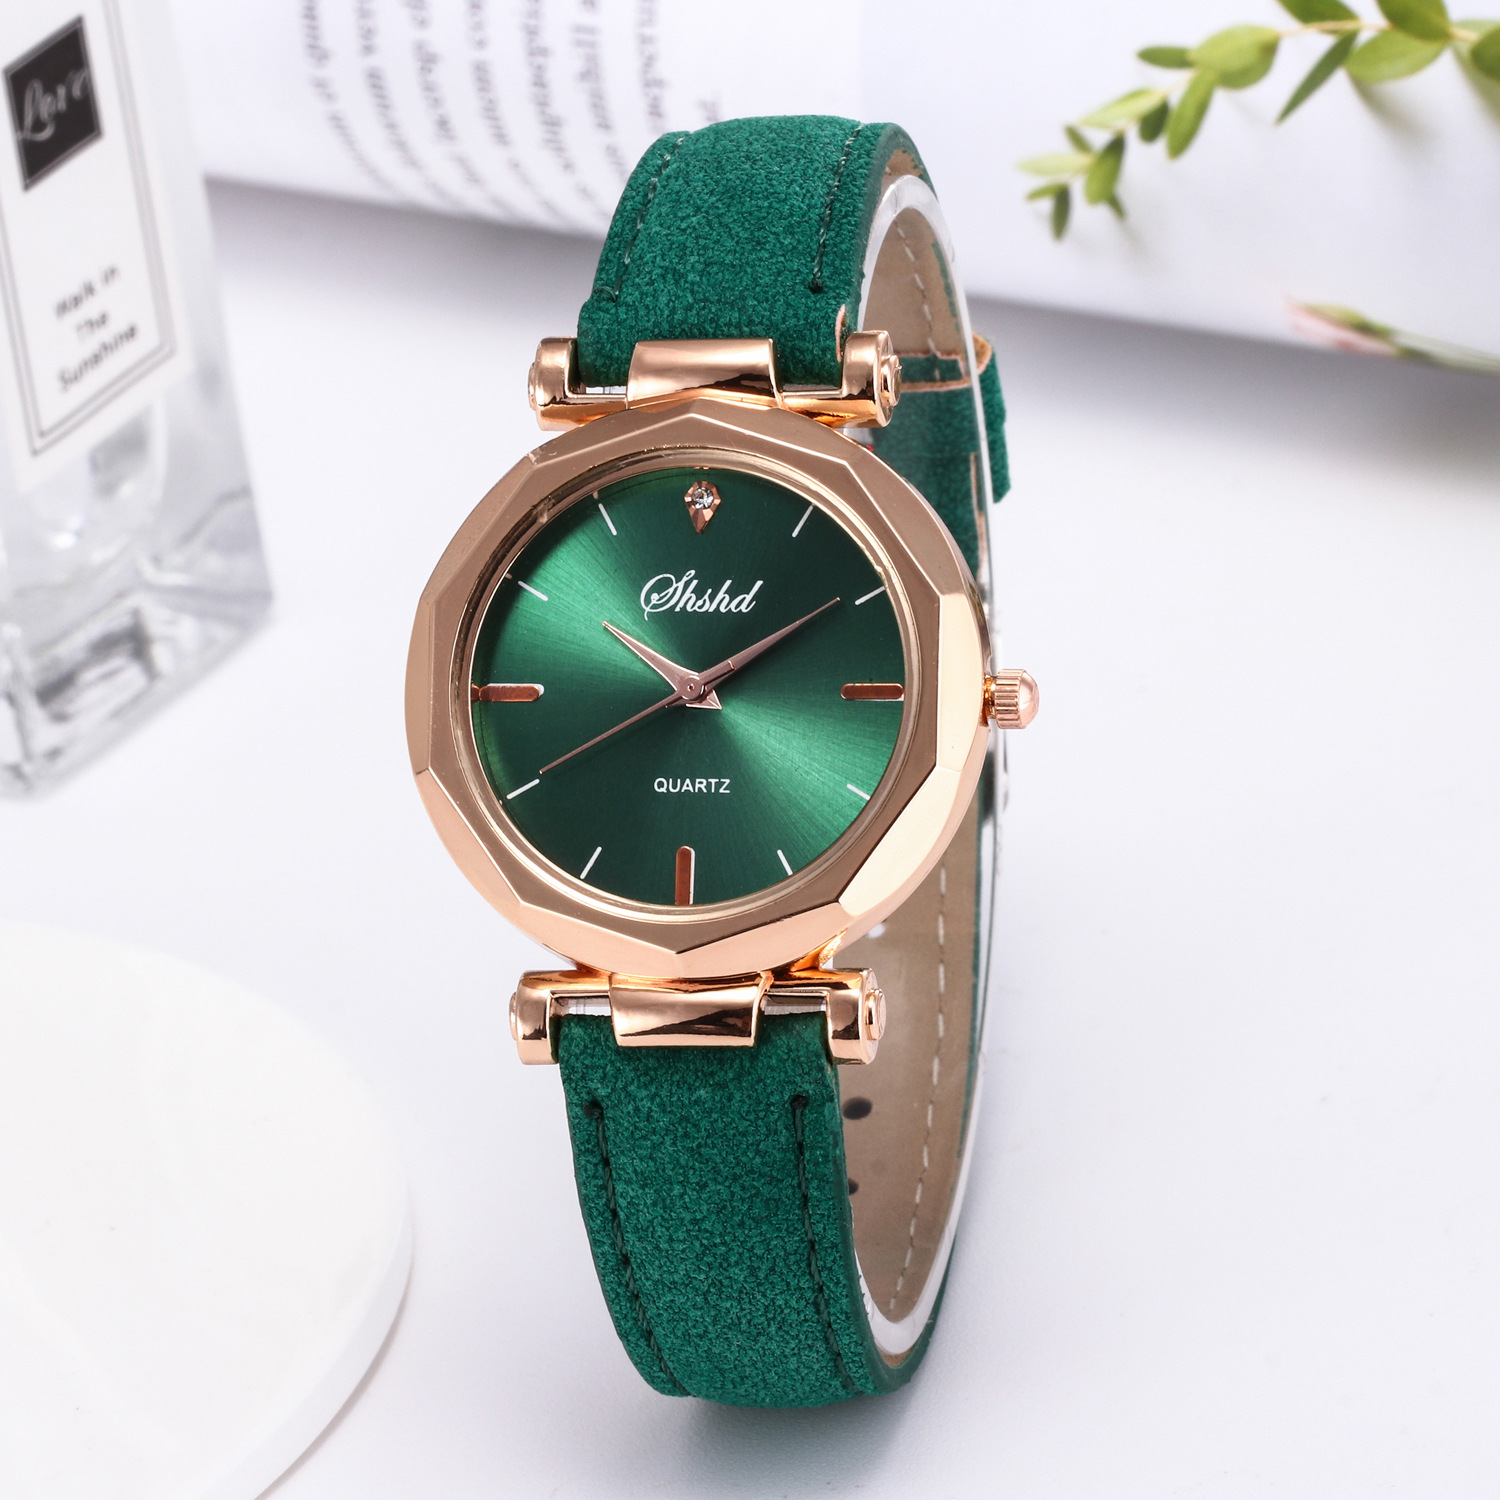 2019 Fashion Women Watch Leather Casual Internet Celebrity Watch Luxury Quartz Crystal Wrist Watch Casual For Women